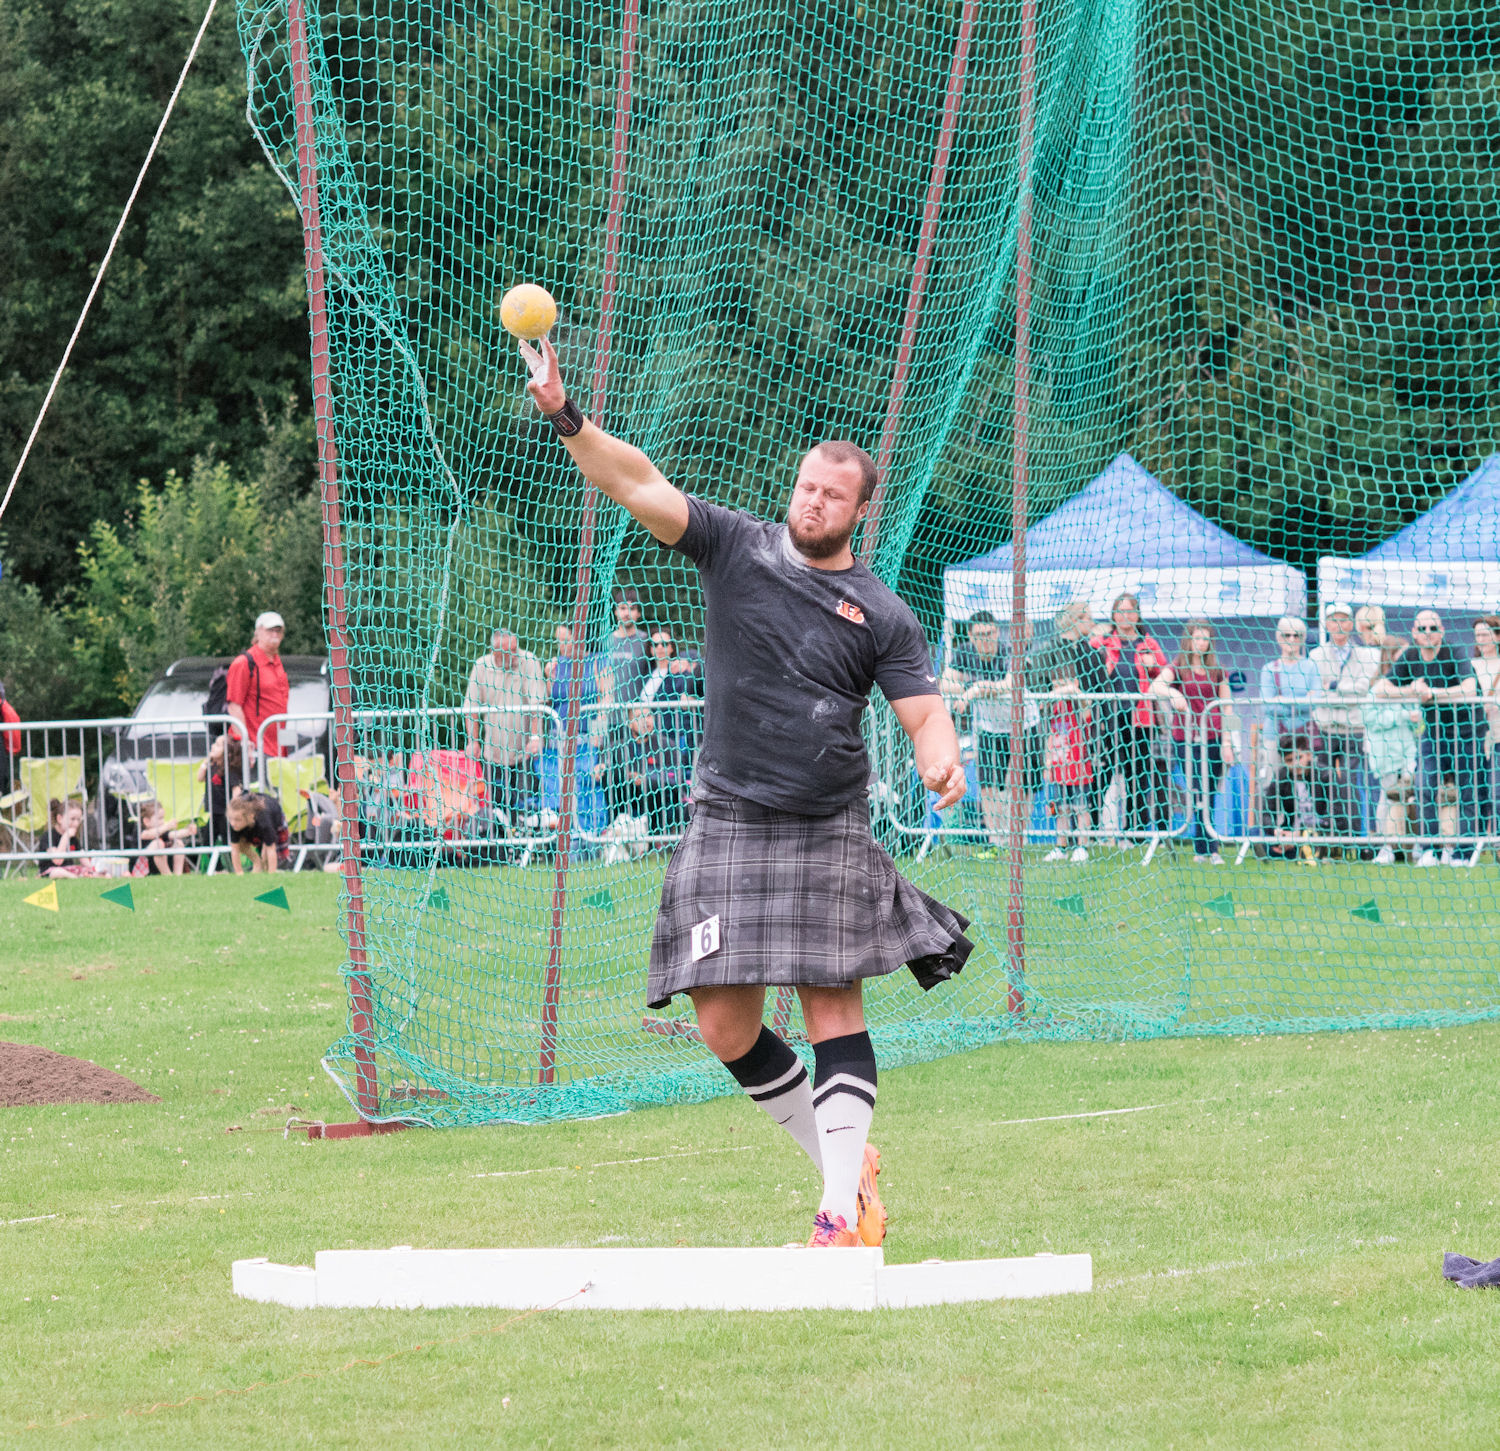 Highland Games Image 9